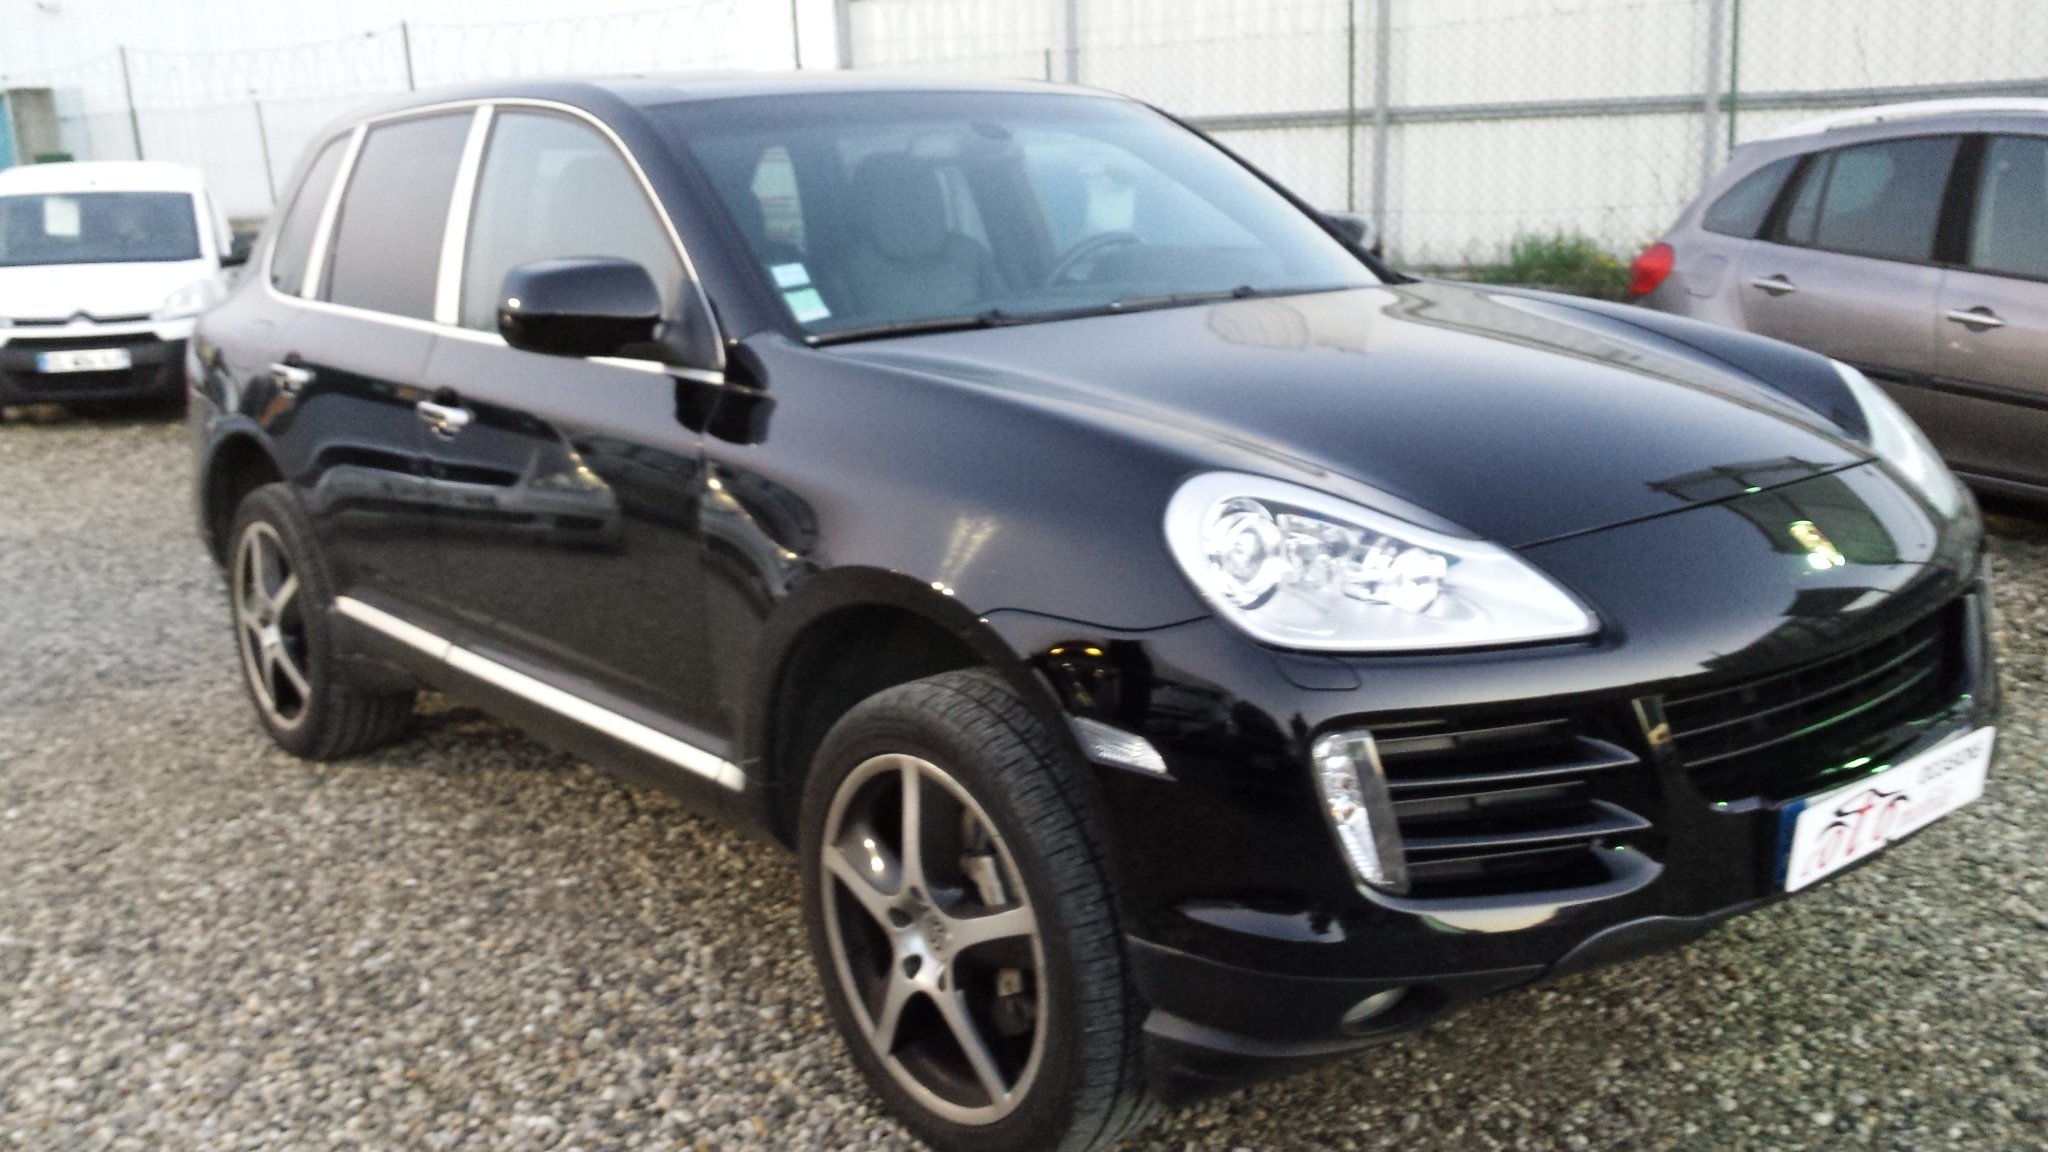 voiture porsche cayenne 4 8 v8 tiptronic 385cv occasion essence 2007 91500 km 23900. Black Bedroom Furniture Sets. Home Design Ideas